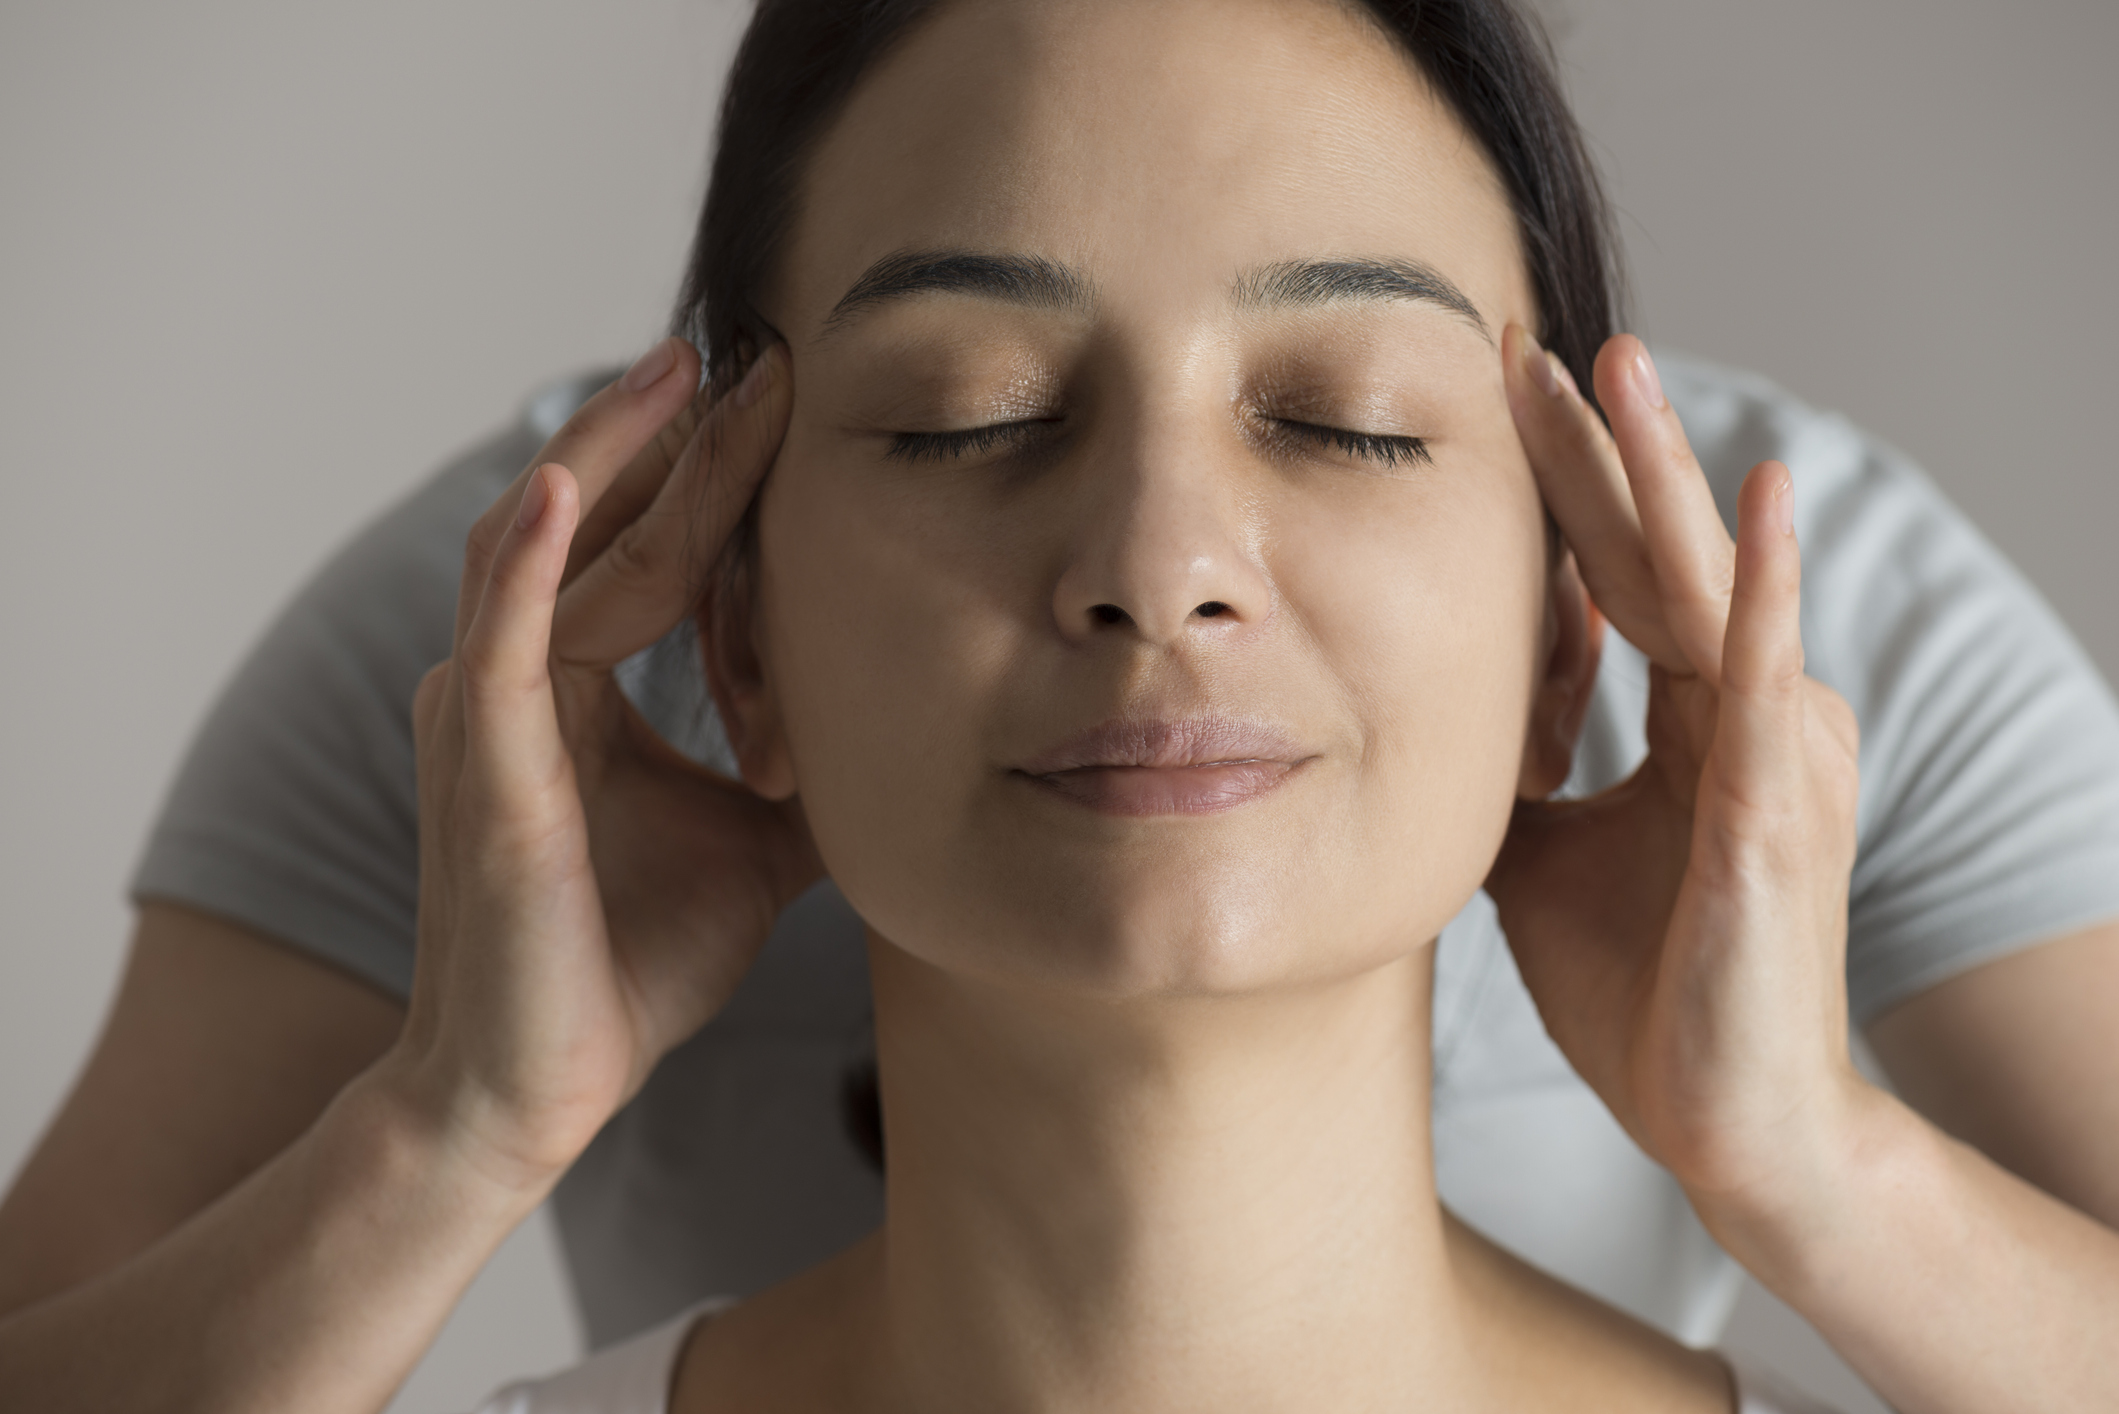 woman massaging away headache